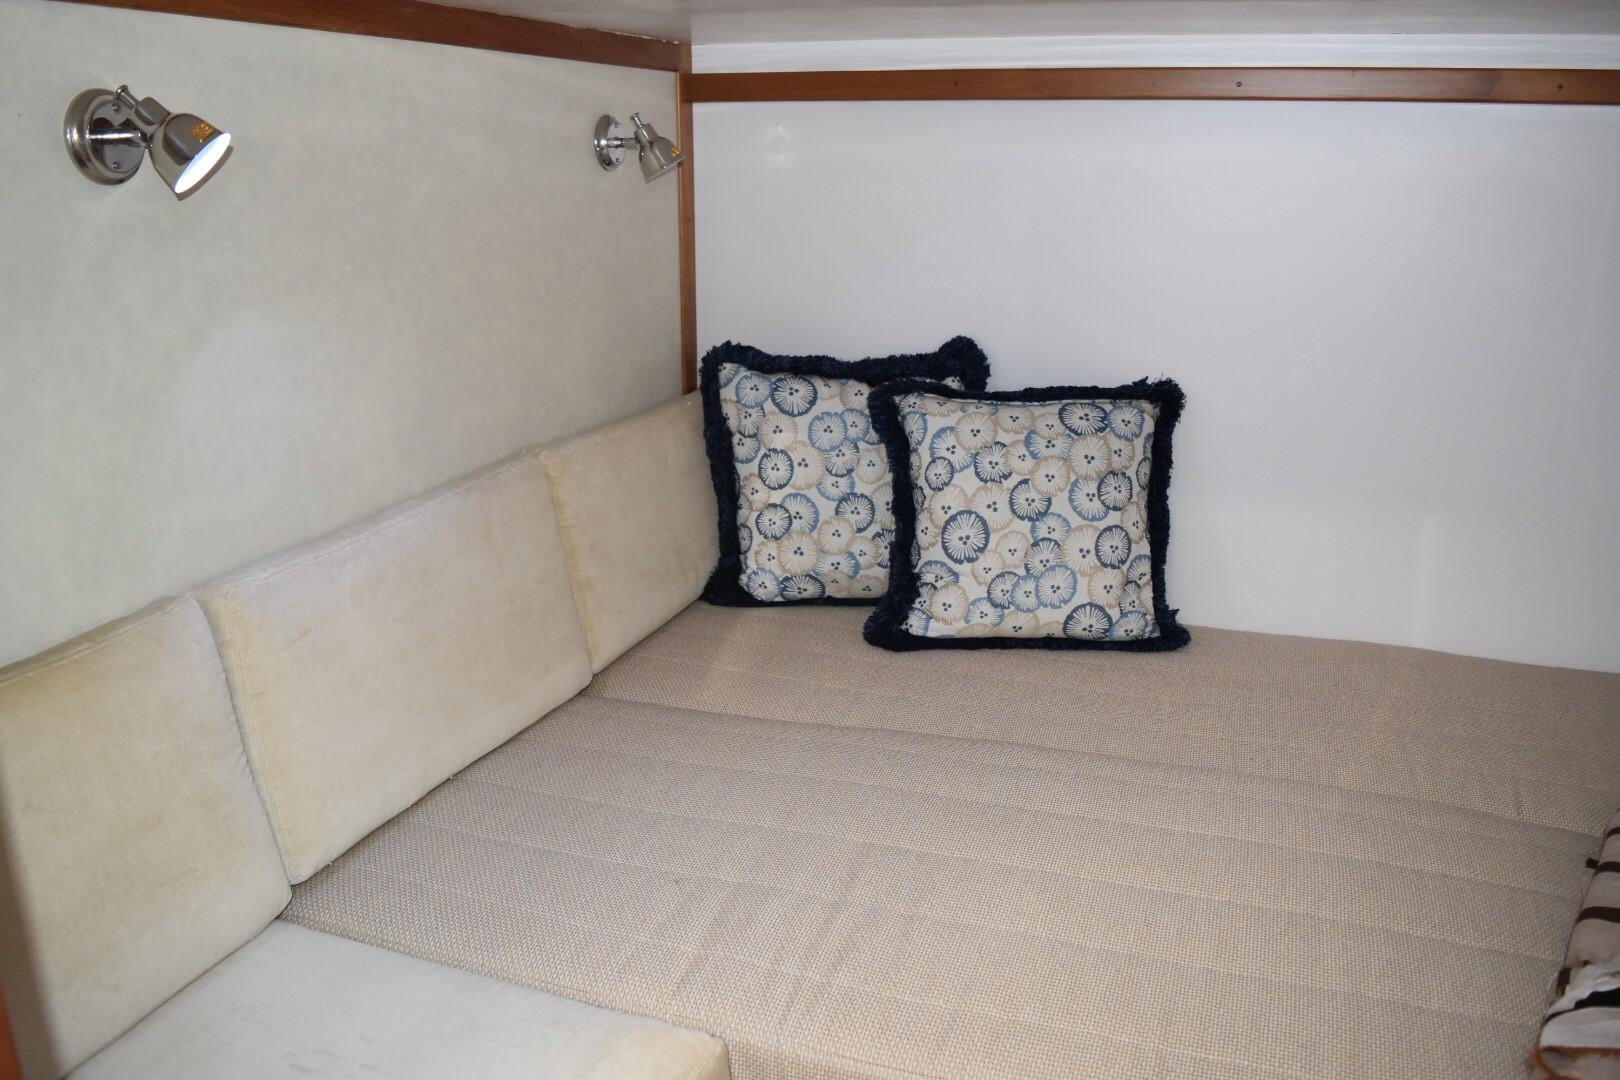 3rd Stateroom Bed and Seat